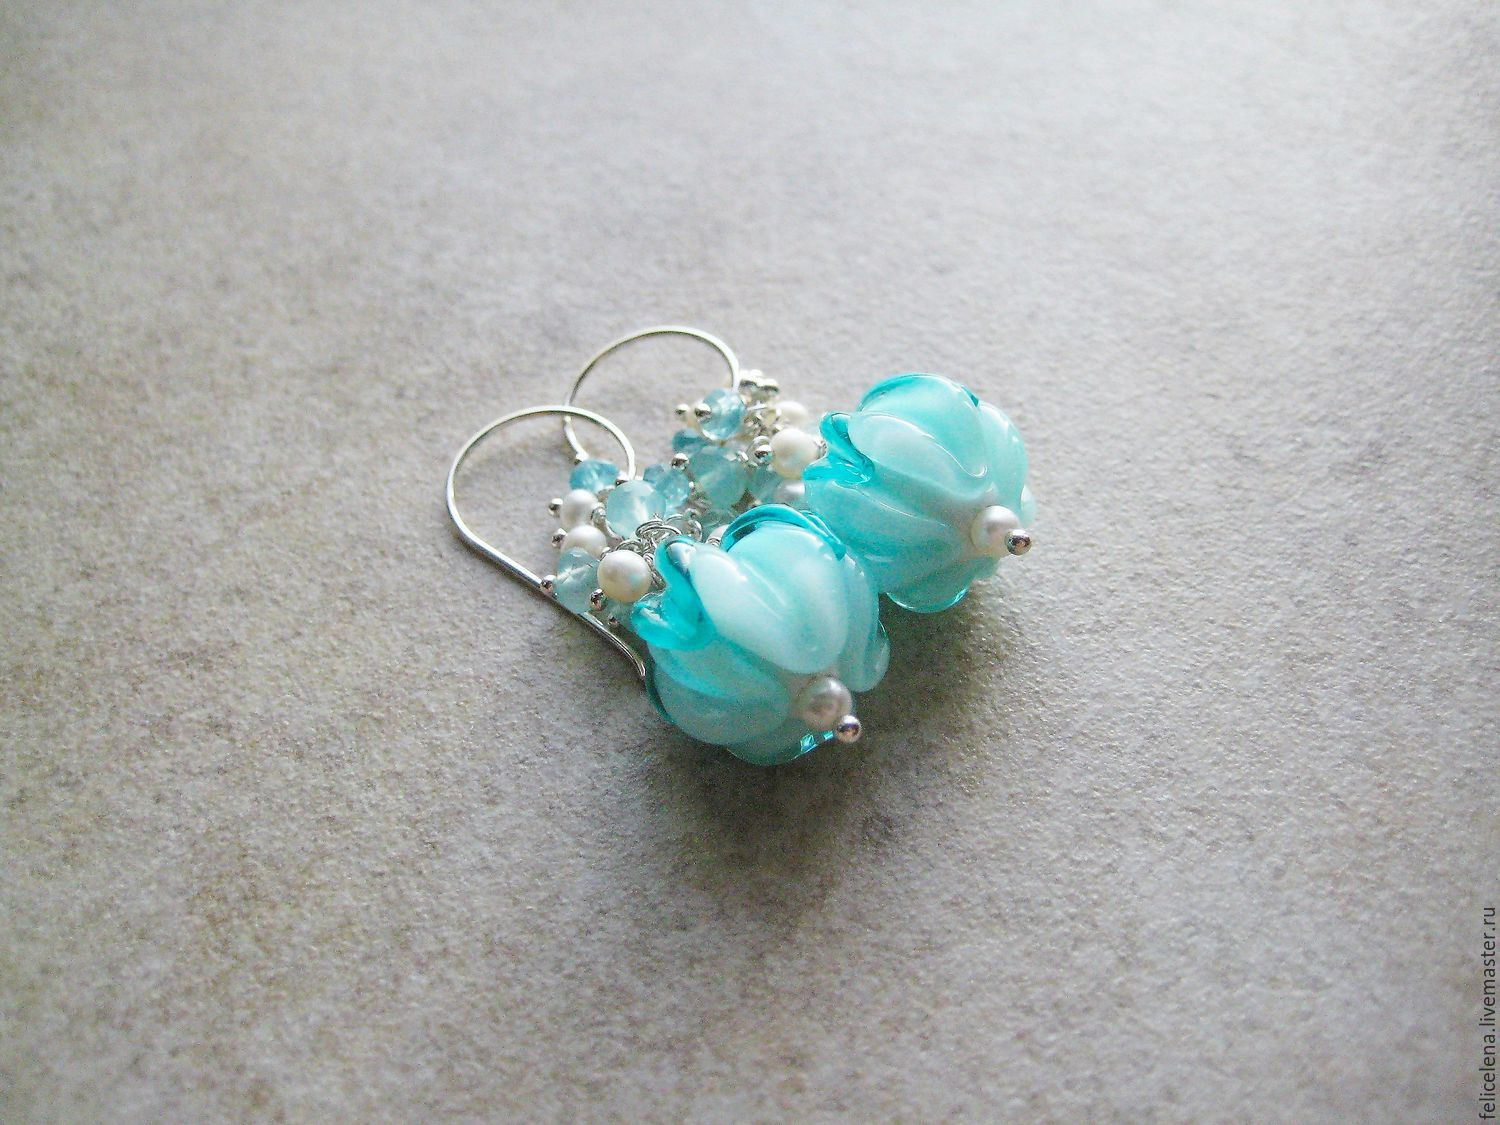 Earrings Handmade Livemaster Tiffany Blue Silver Pearl Aquamarine Chalcedony